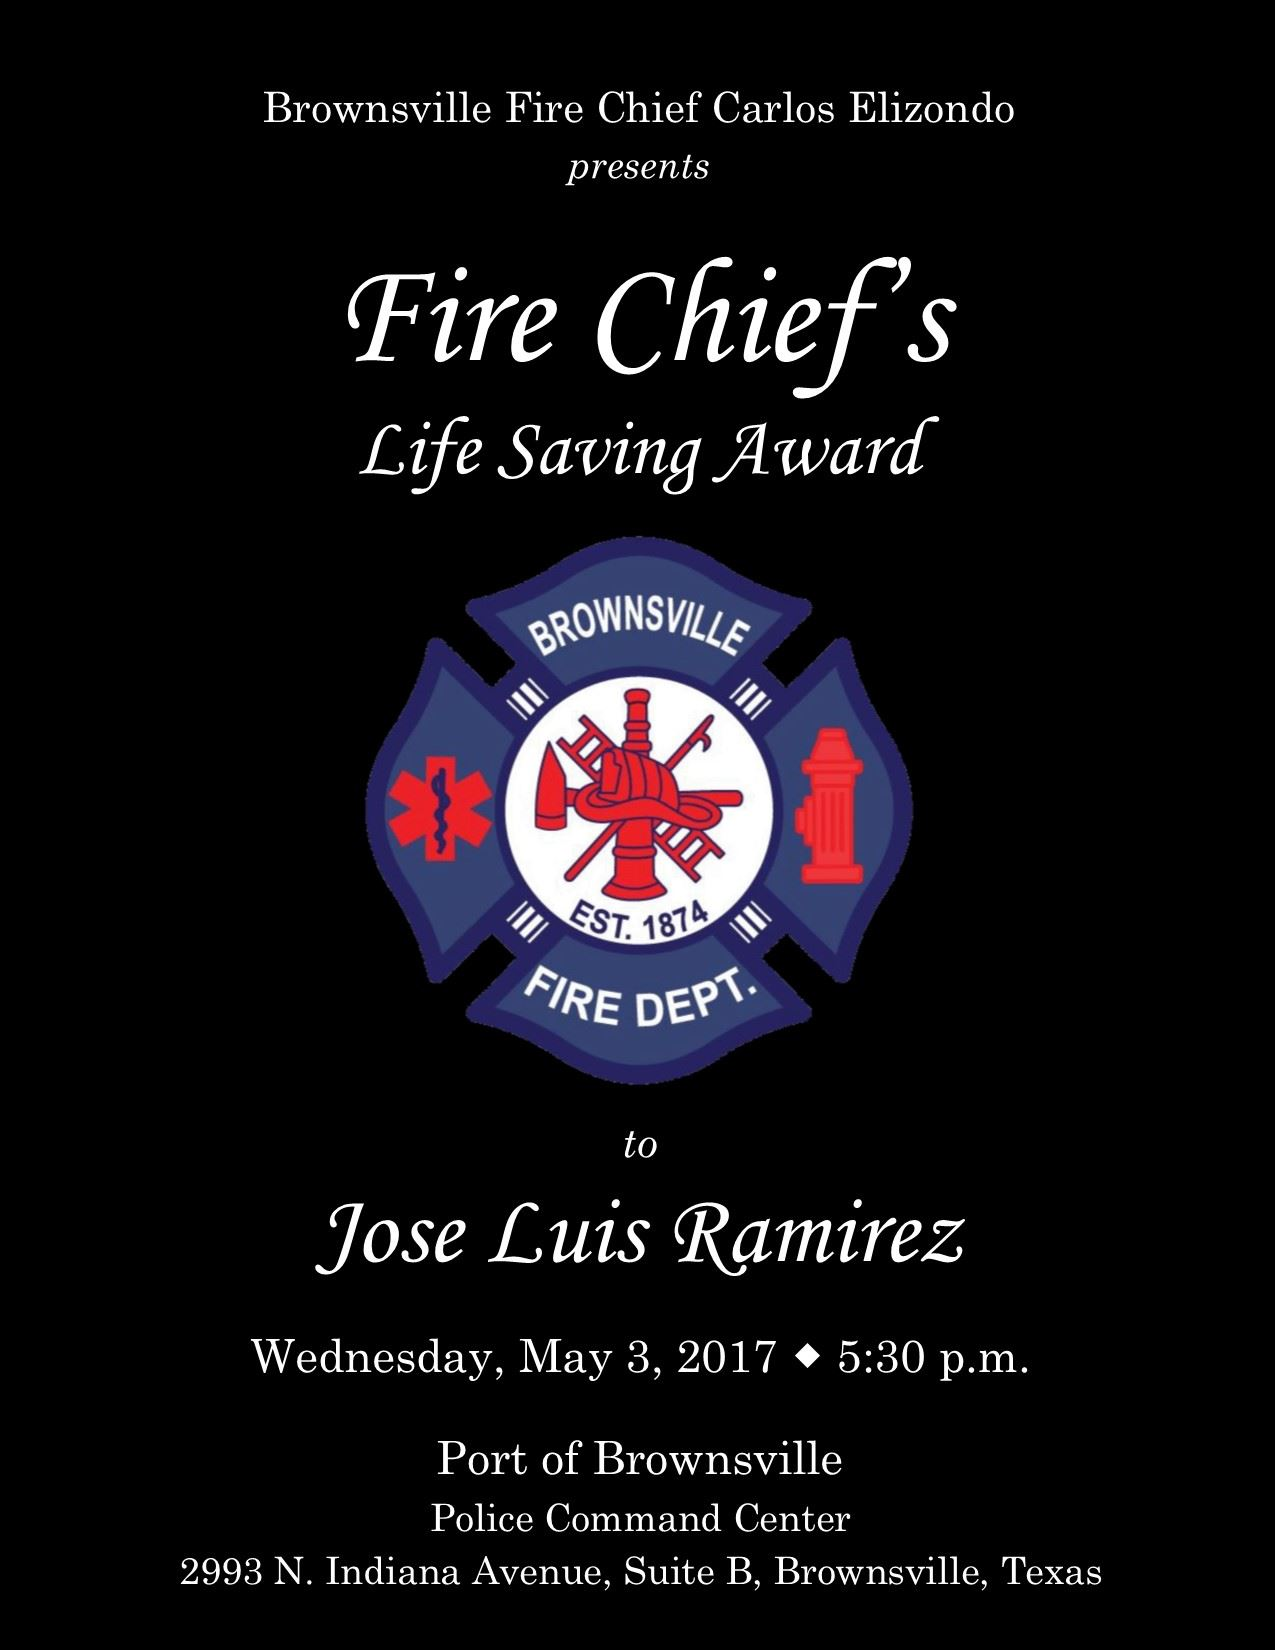 Fire Chief Life Saving Award